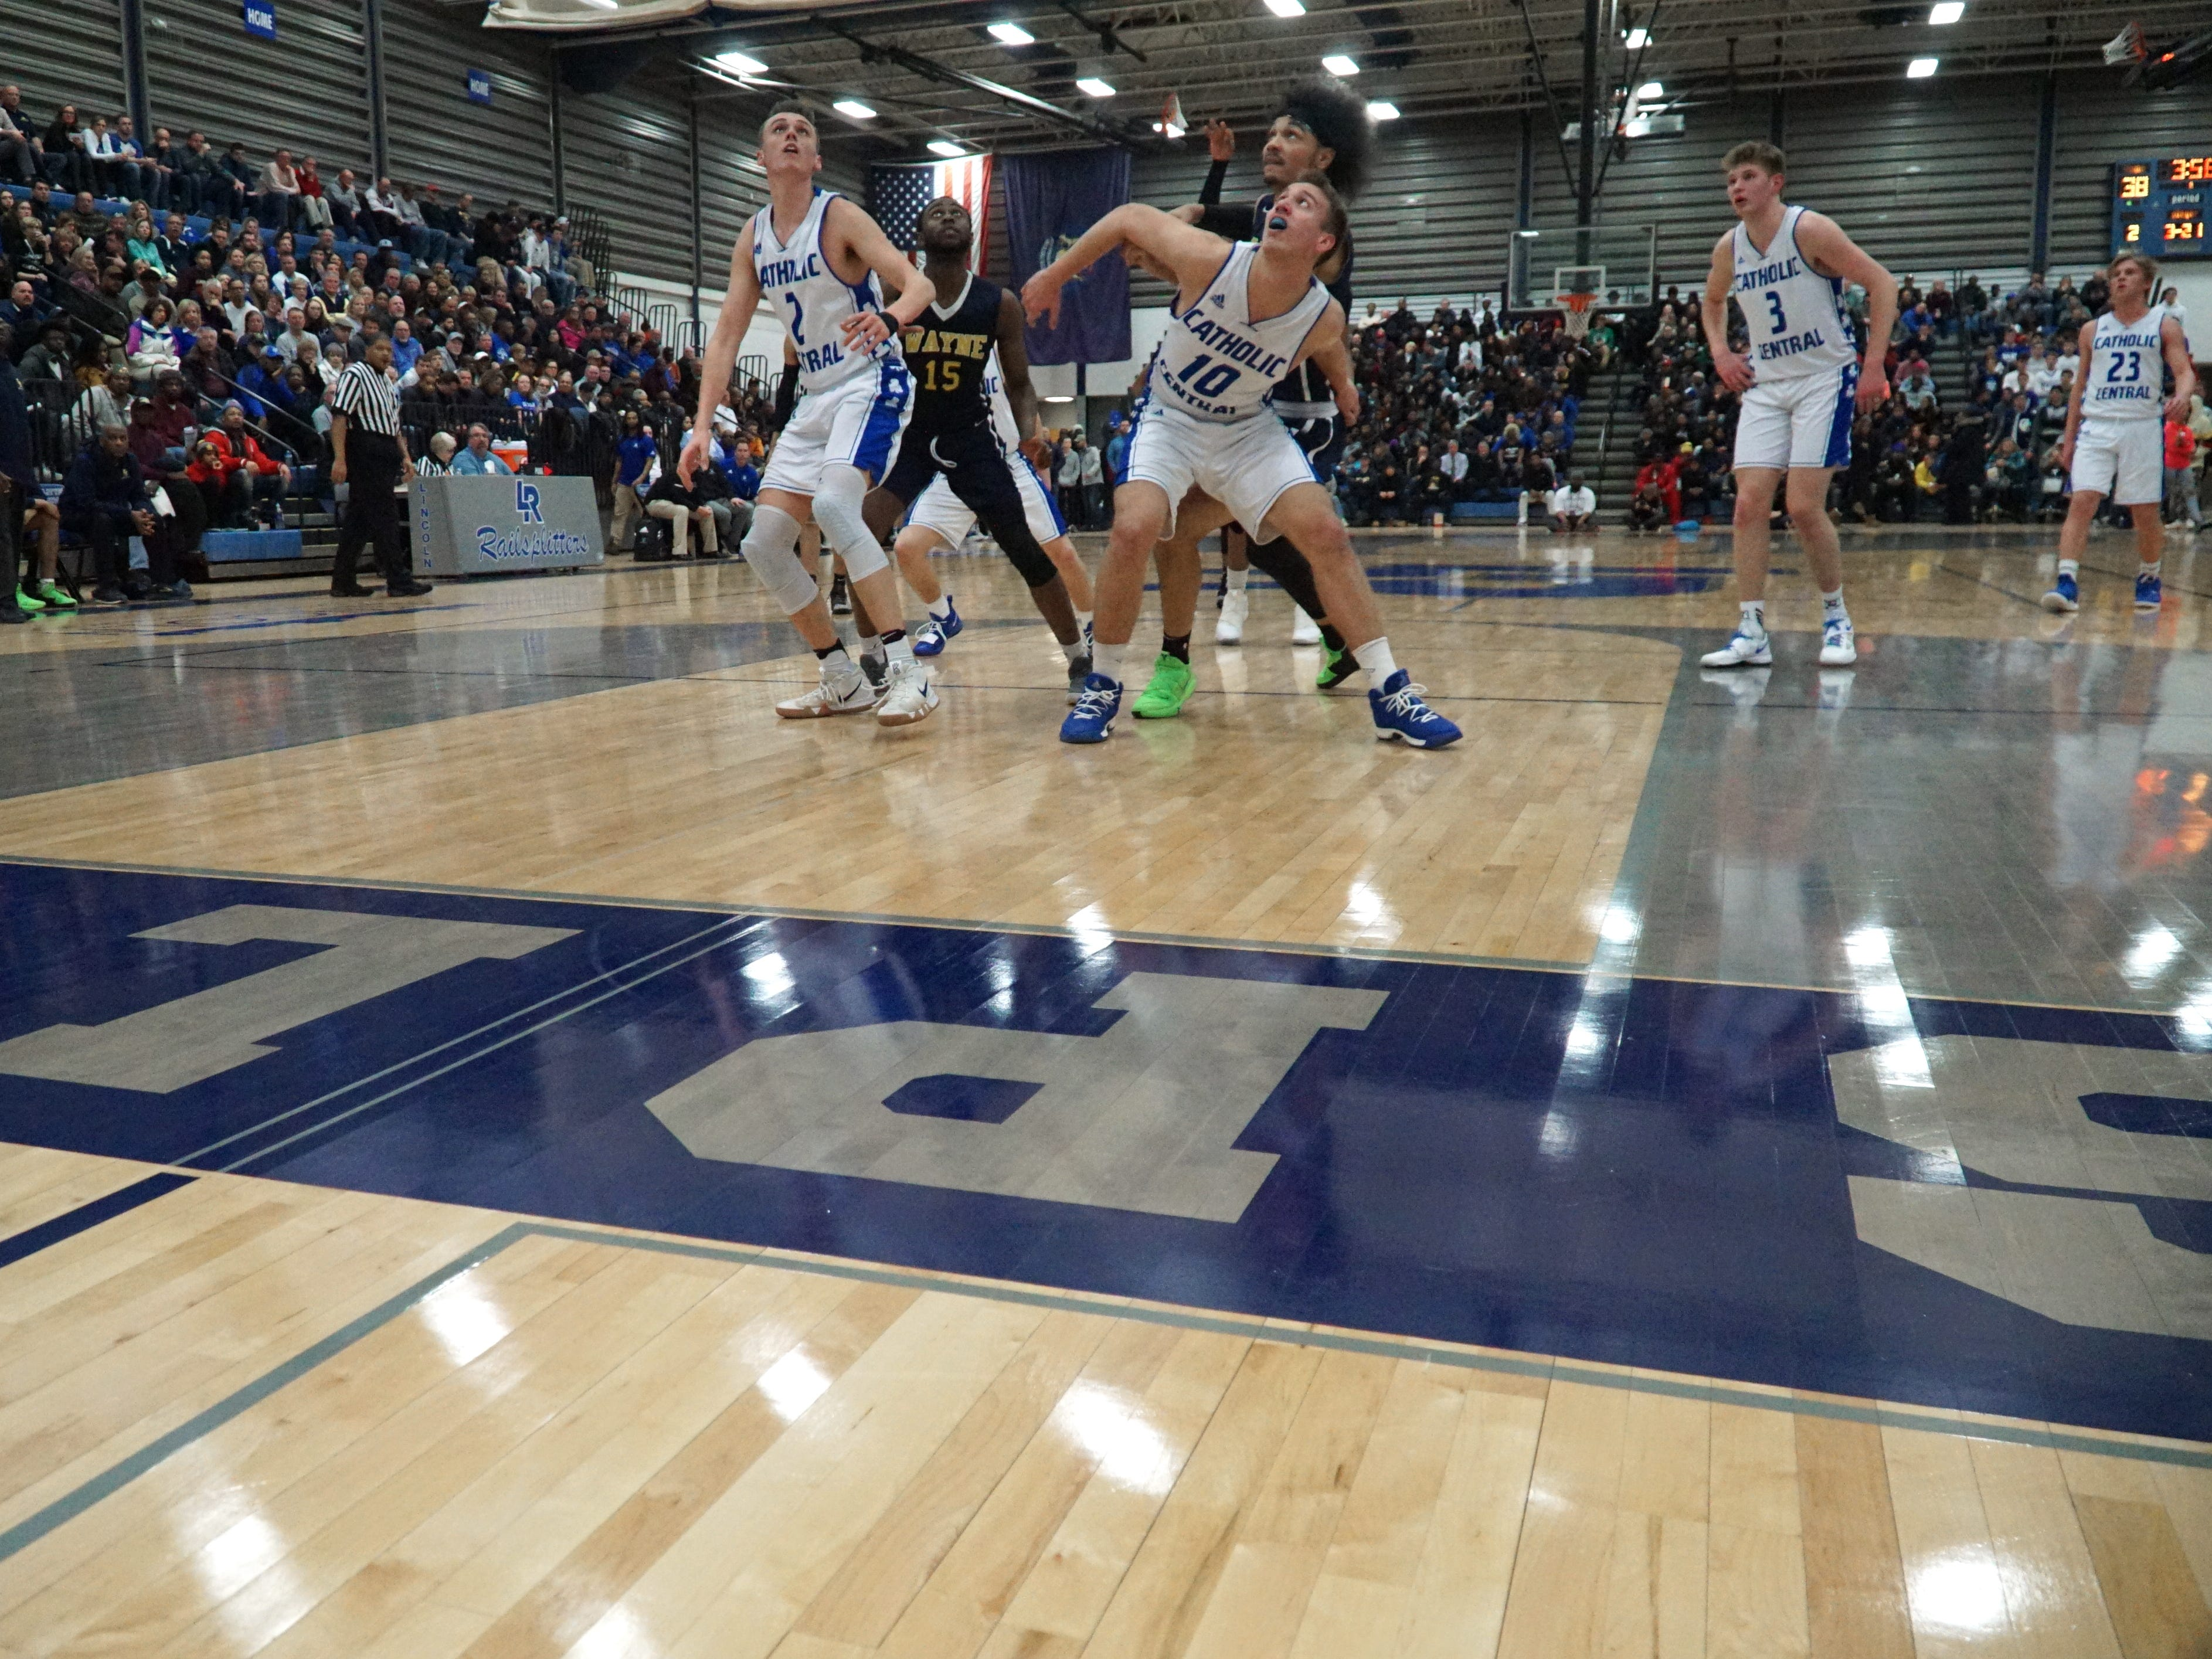 Detroit Catholic Central and Wayne Memorial met at Lincoln Consolidated High School.